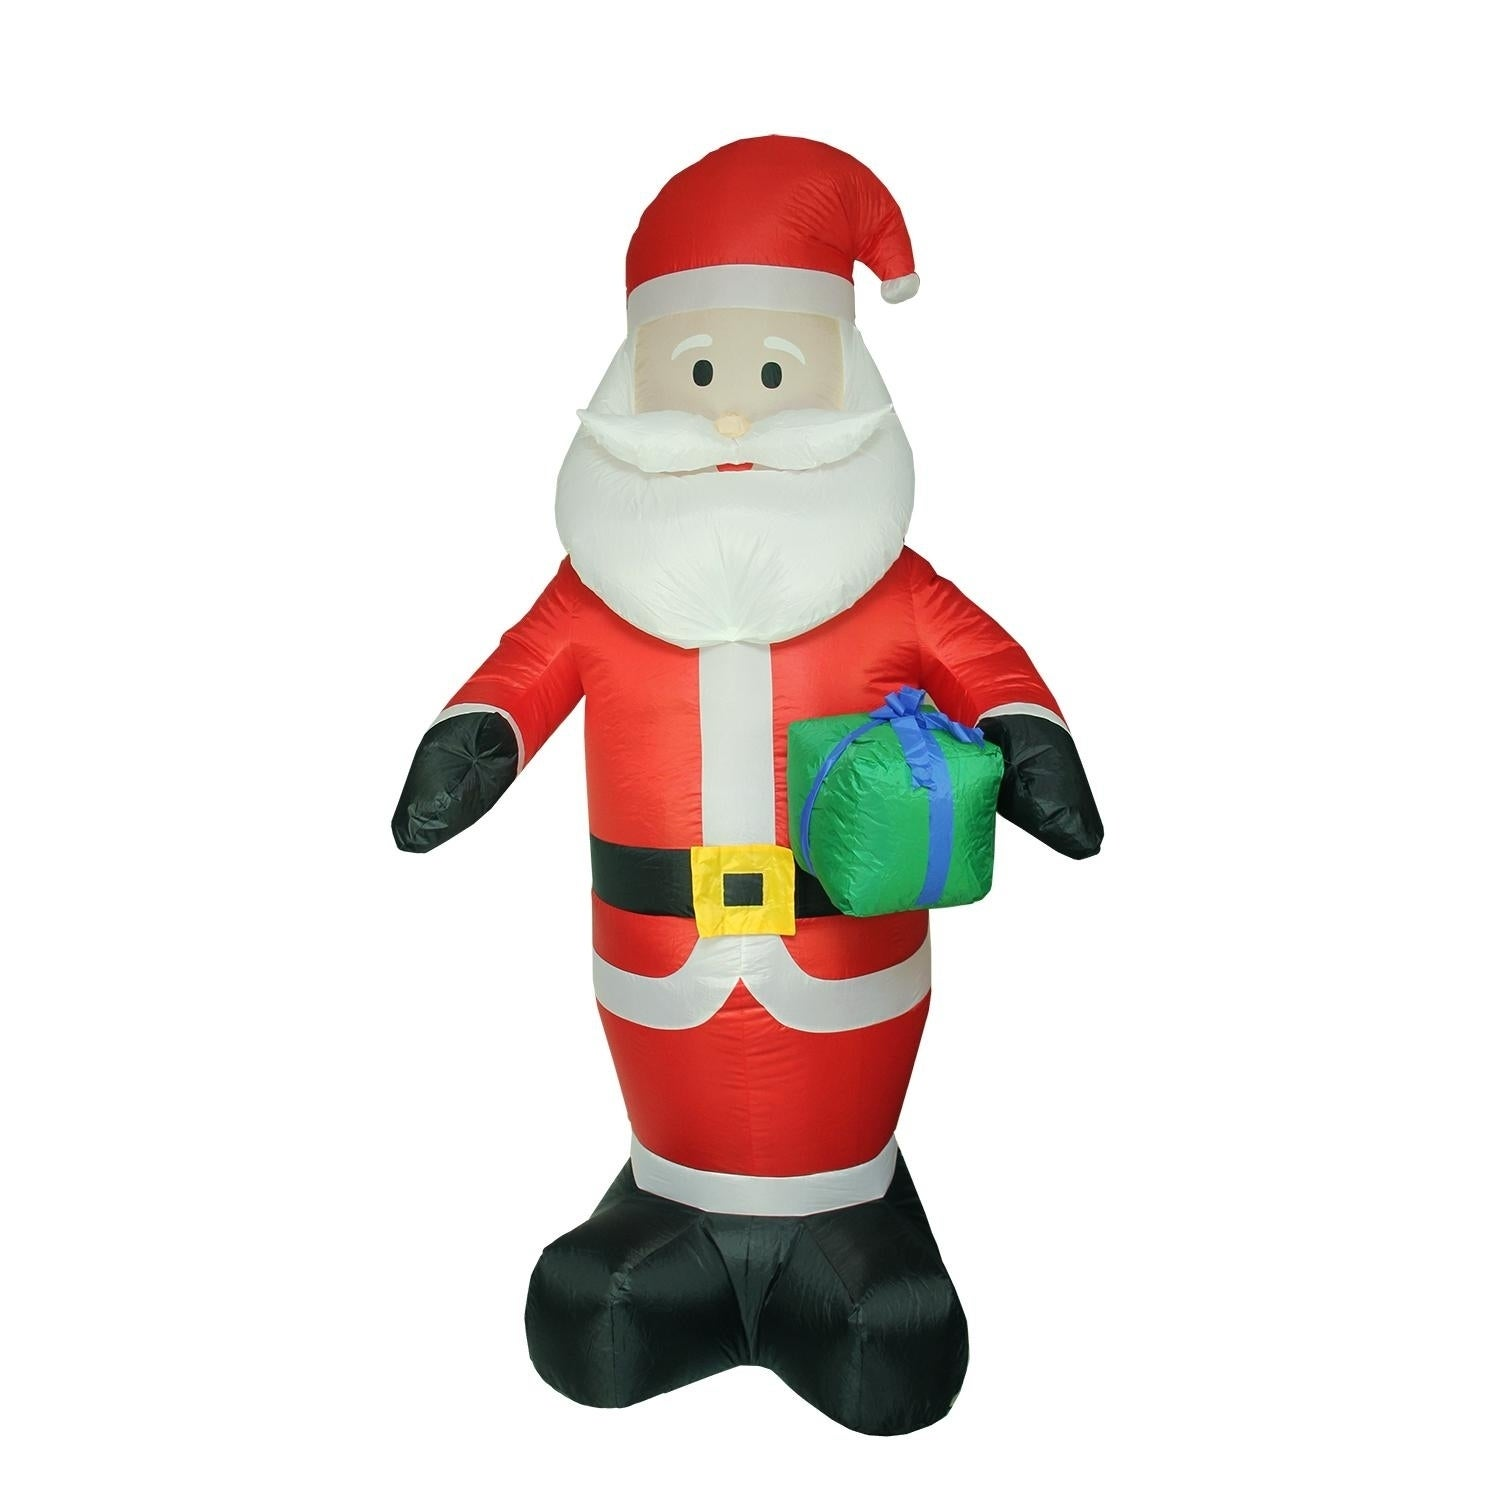 Lb International 8' Inflatable Lighted Santa Claus with G...